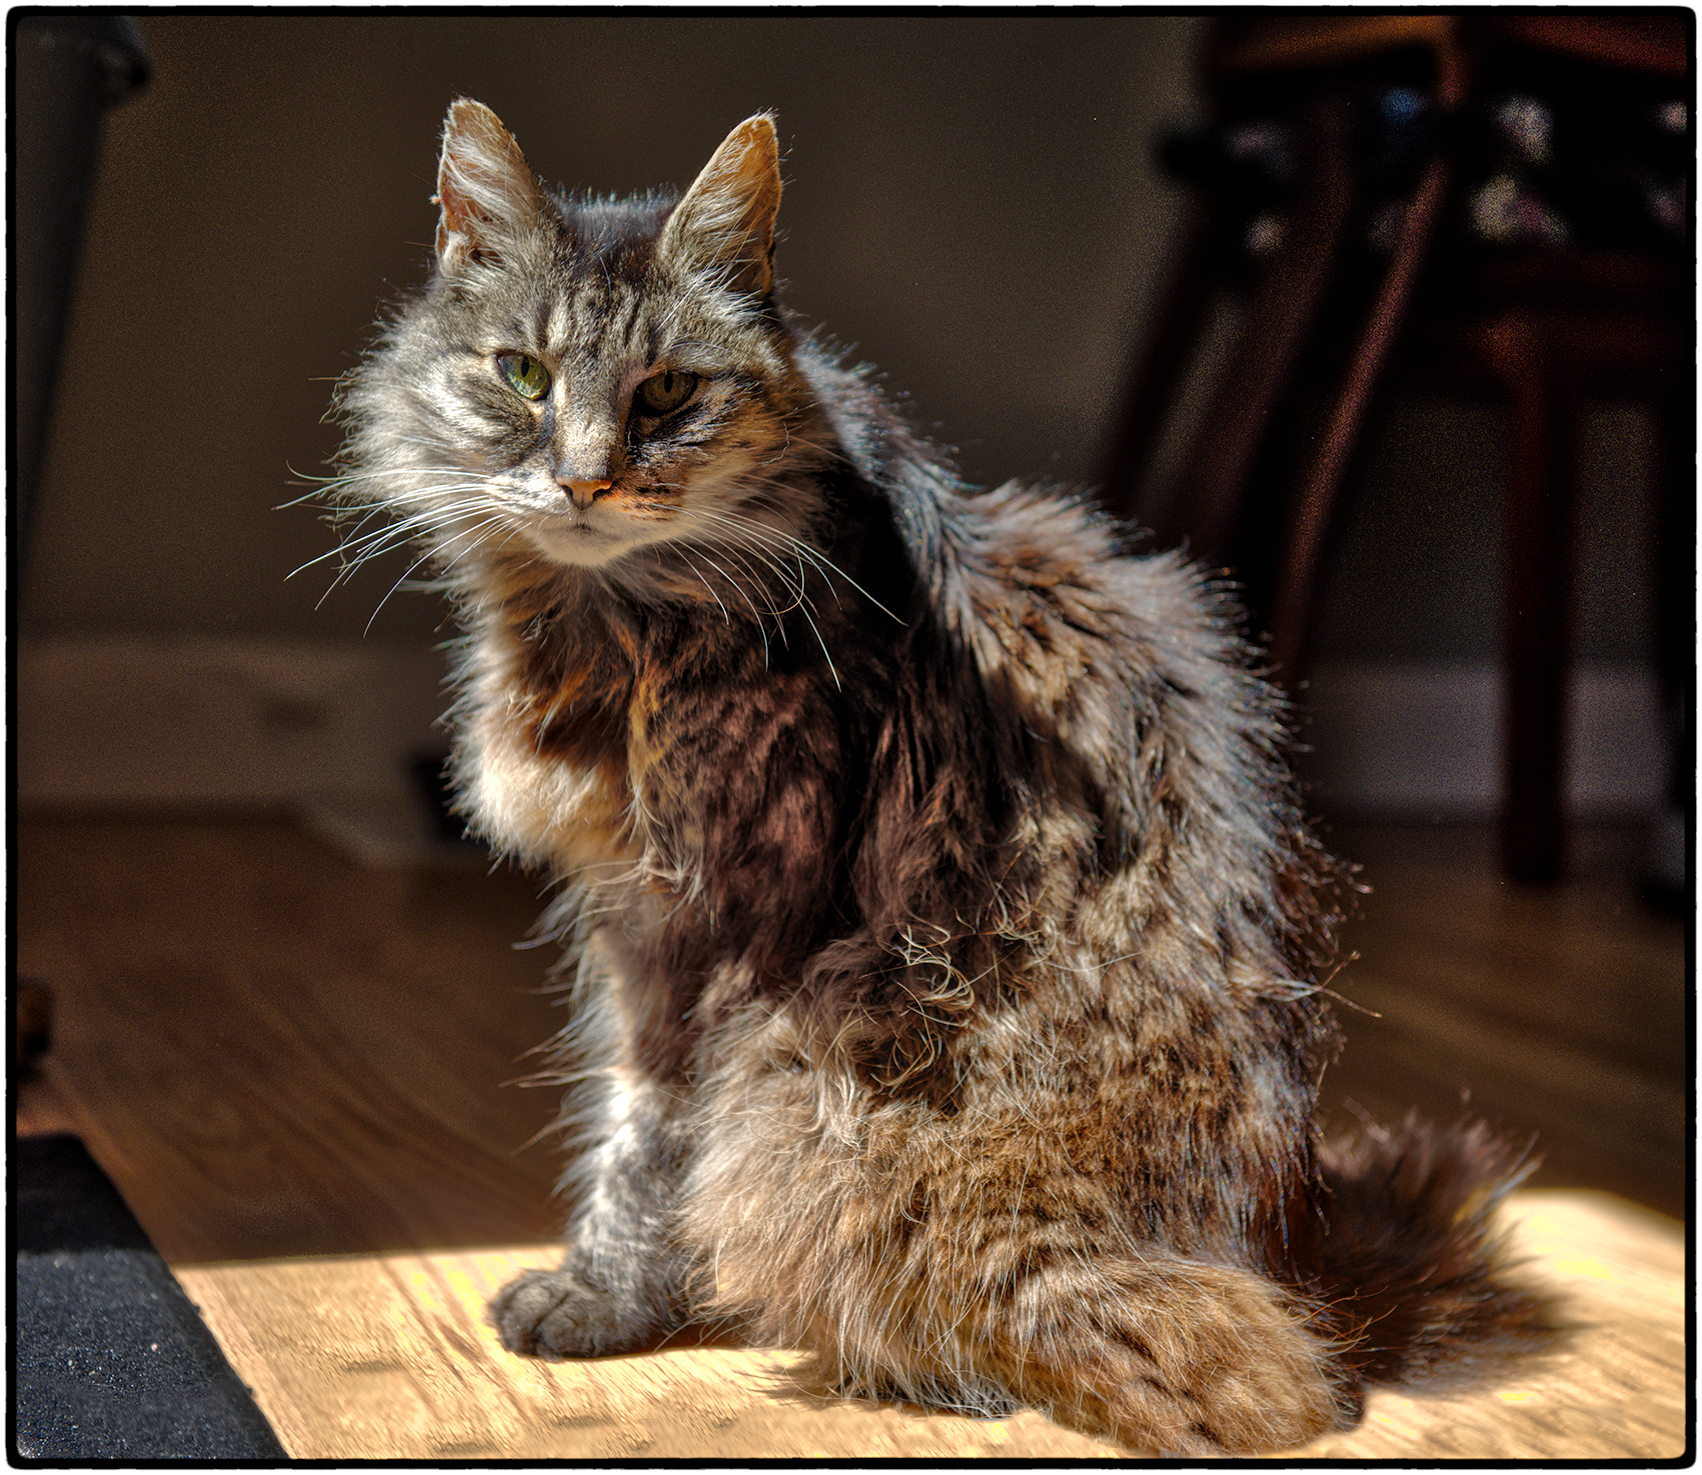 Emerson, our late beloved feline